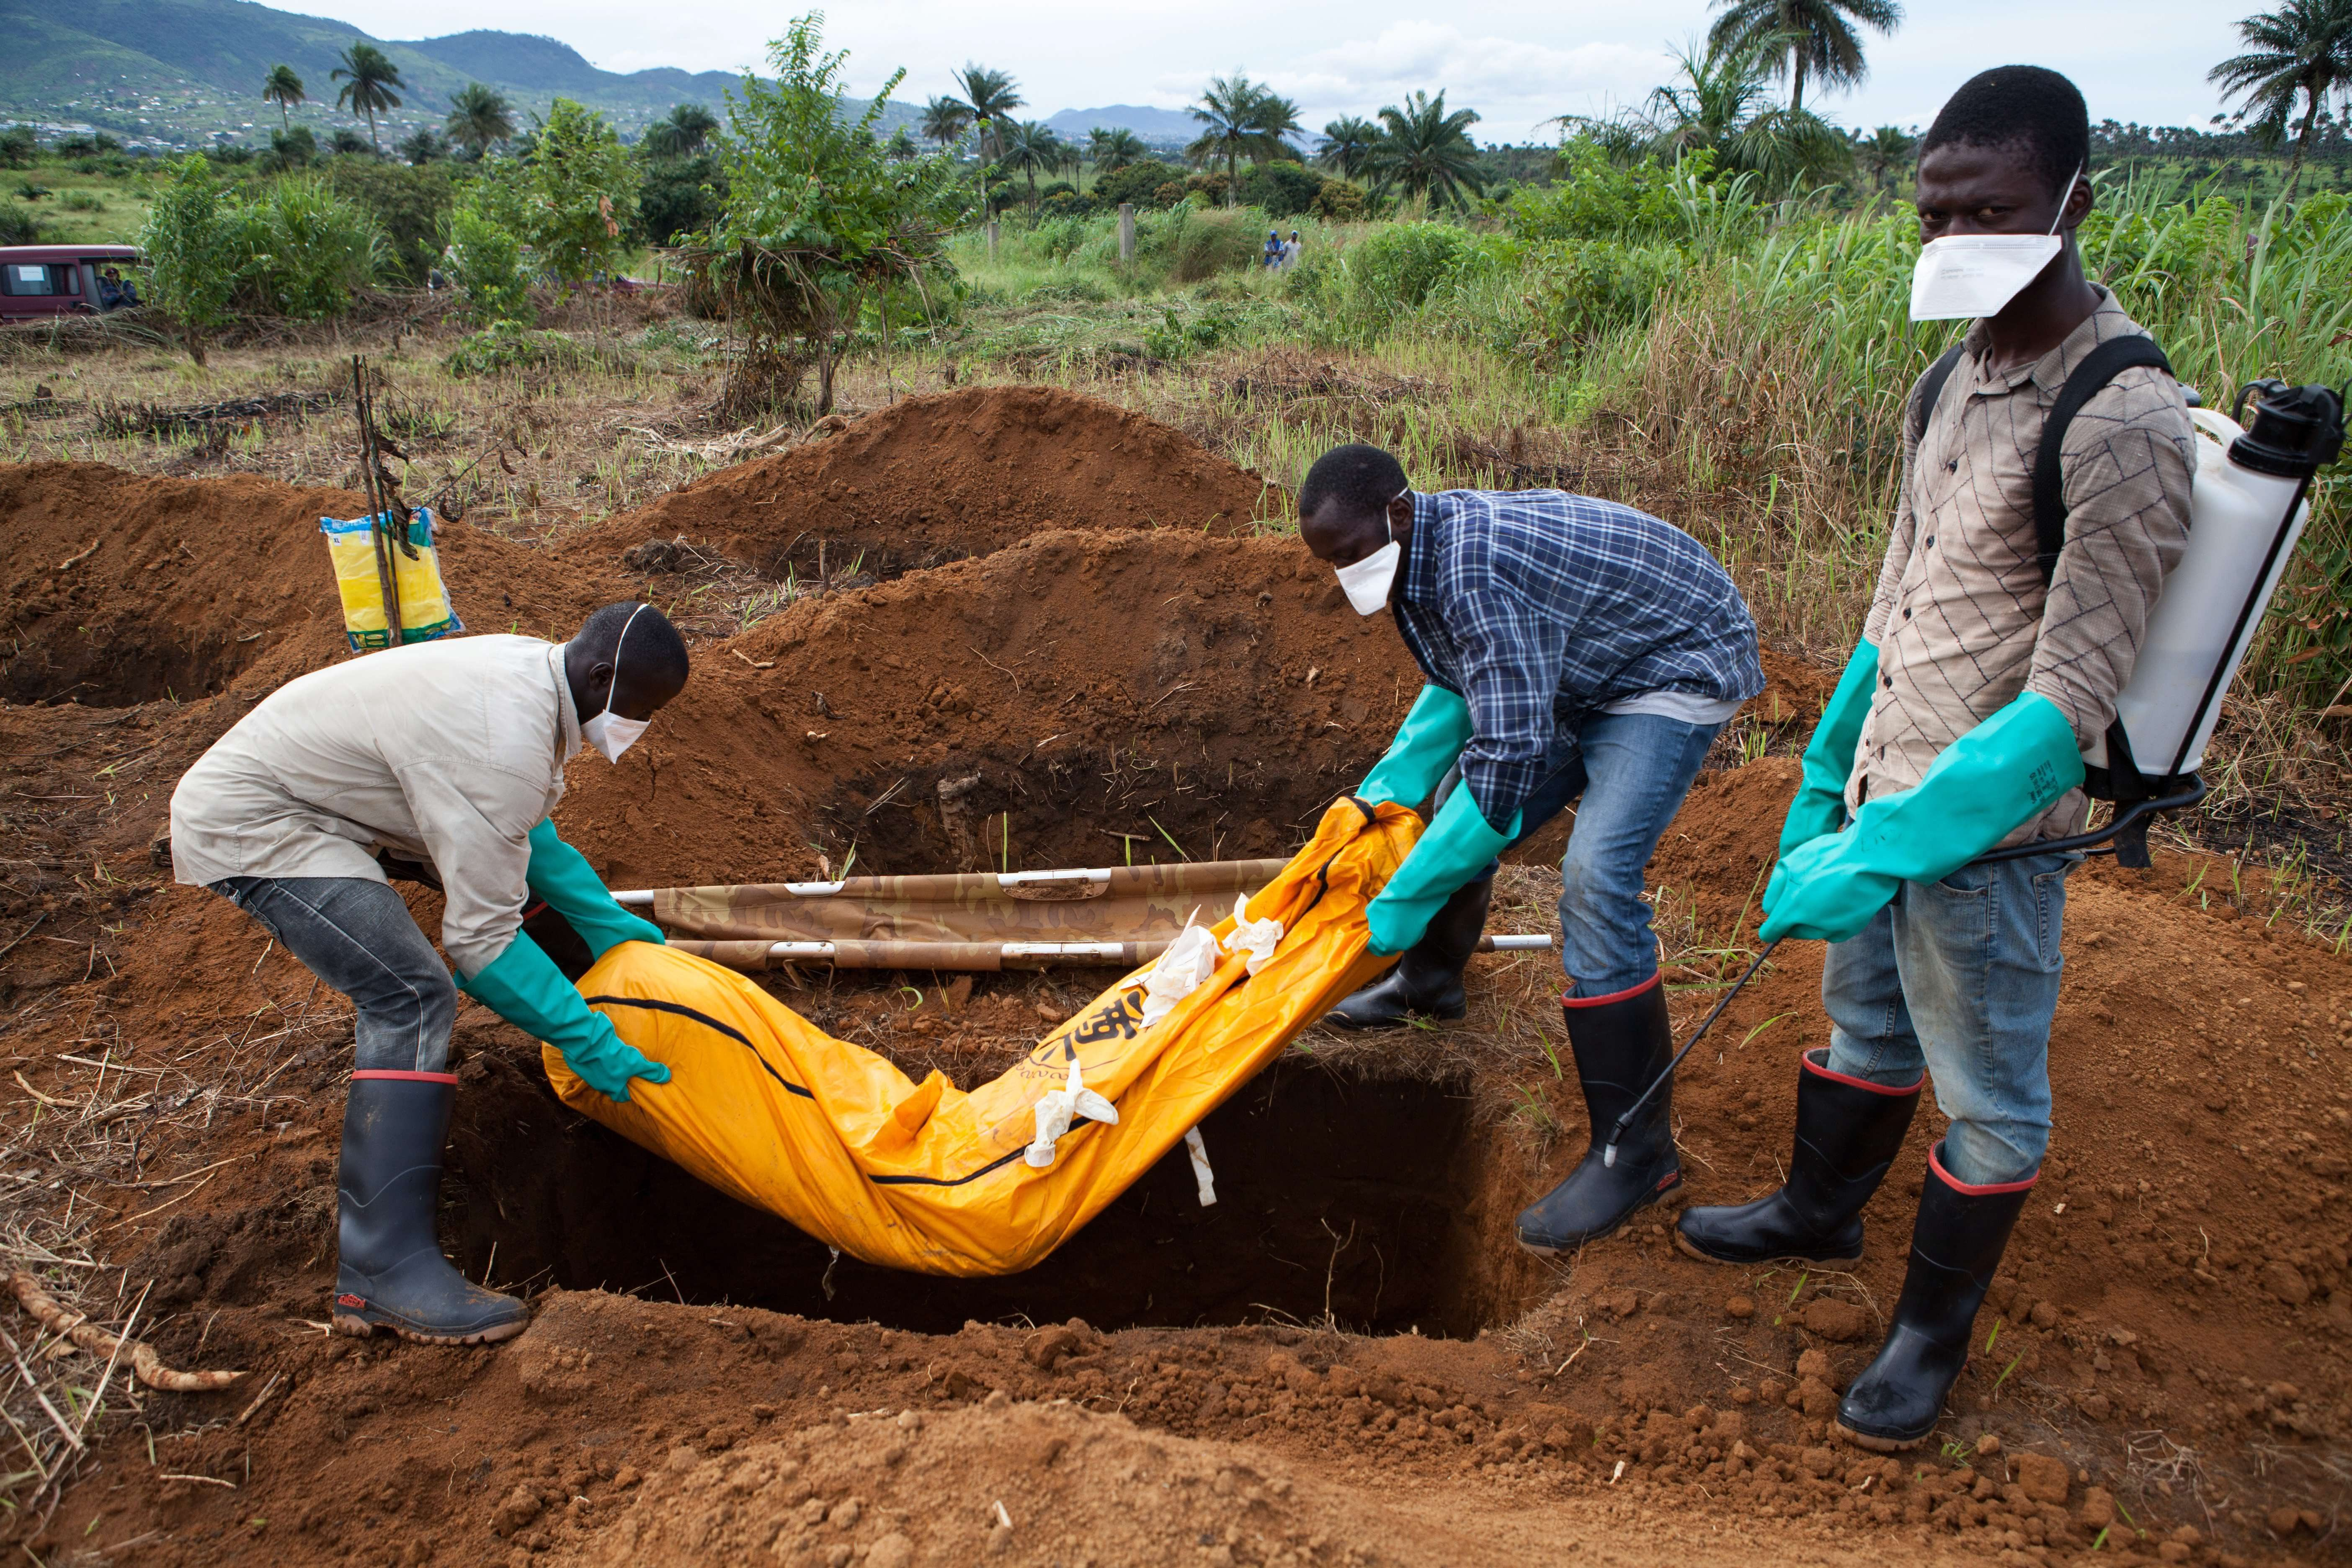 Photo taken on Oct. 7, 2014, shows volunteers in protective suits burying the body of a person who died from Ebola in Waterloo, some 30 kilometers southeast of Freetown, Sierra Leone. (AFP Photo)